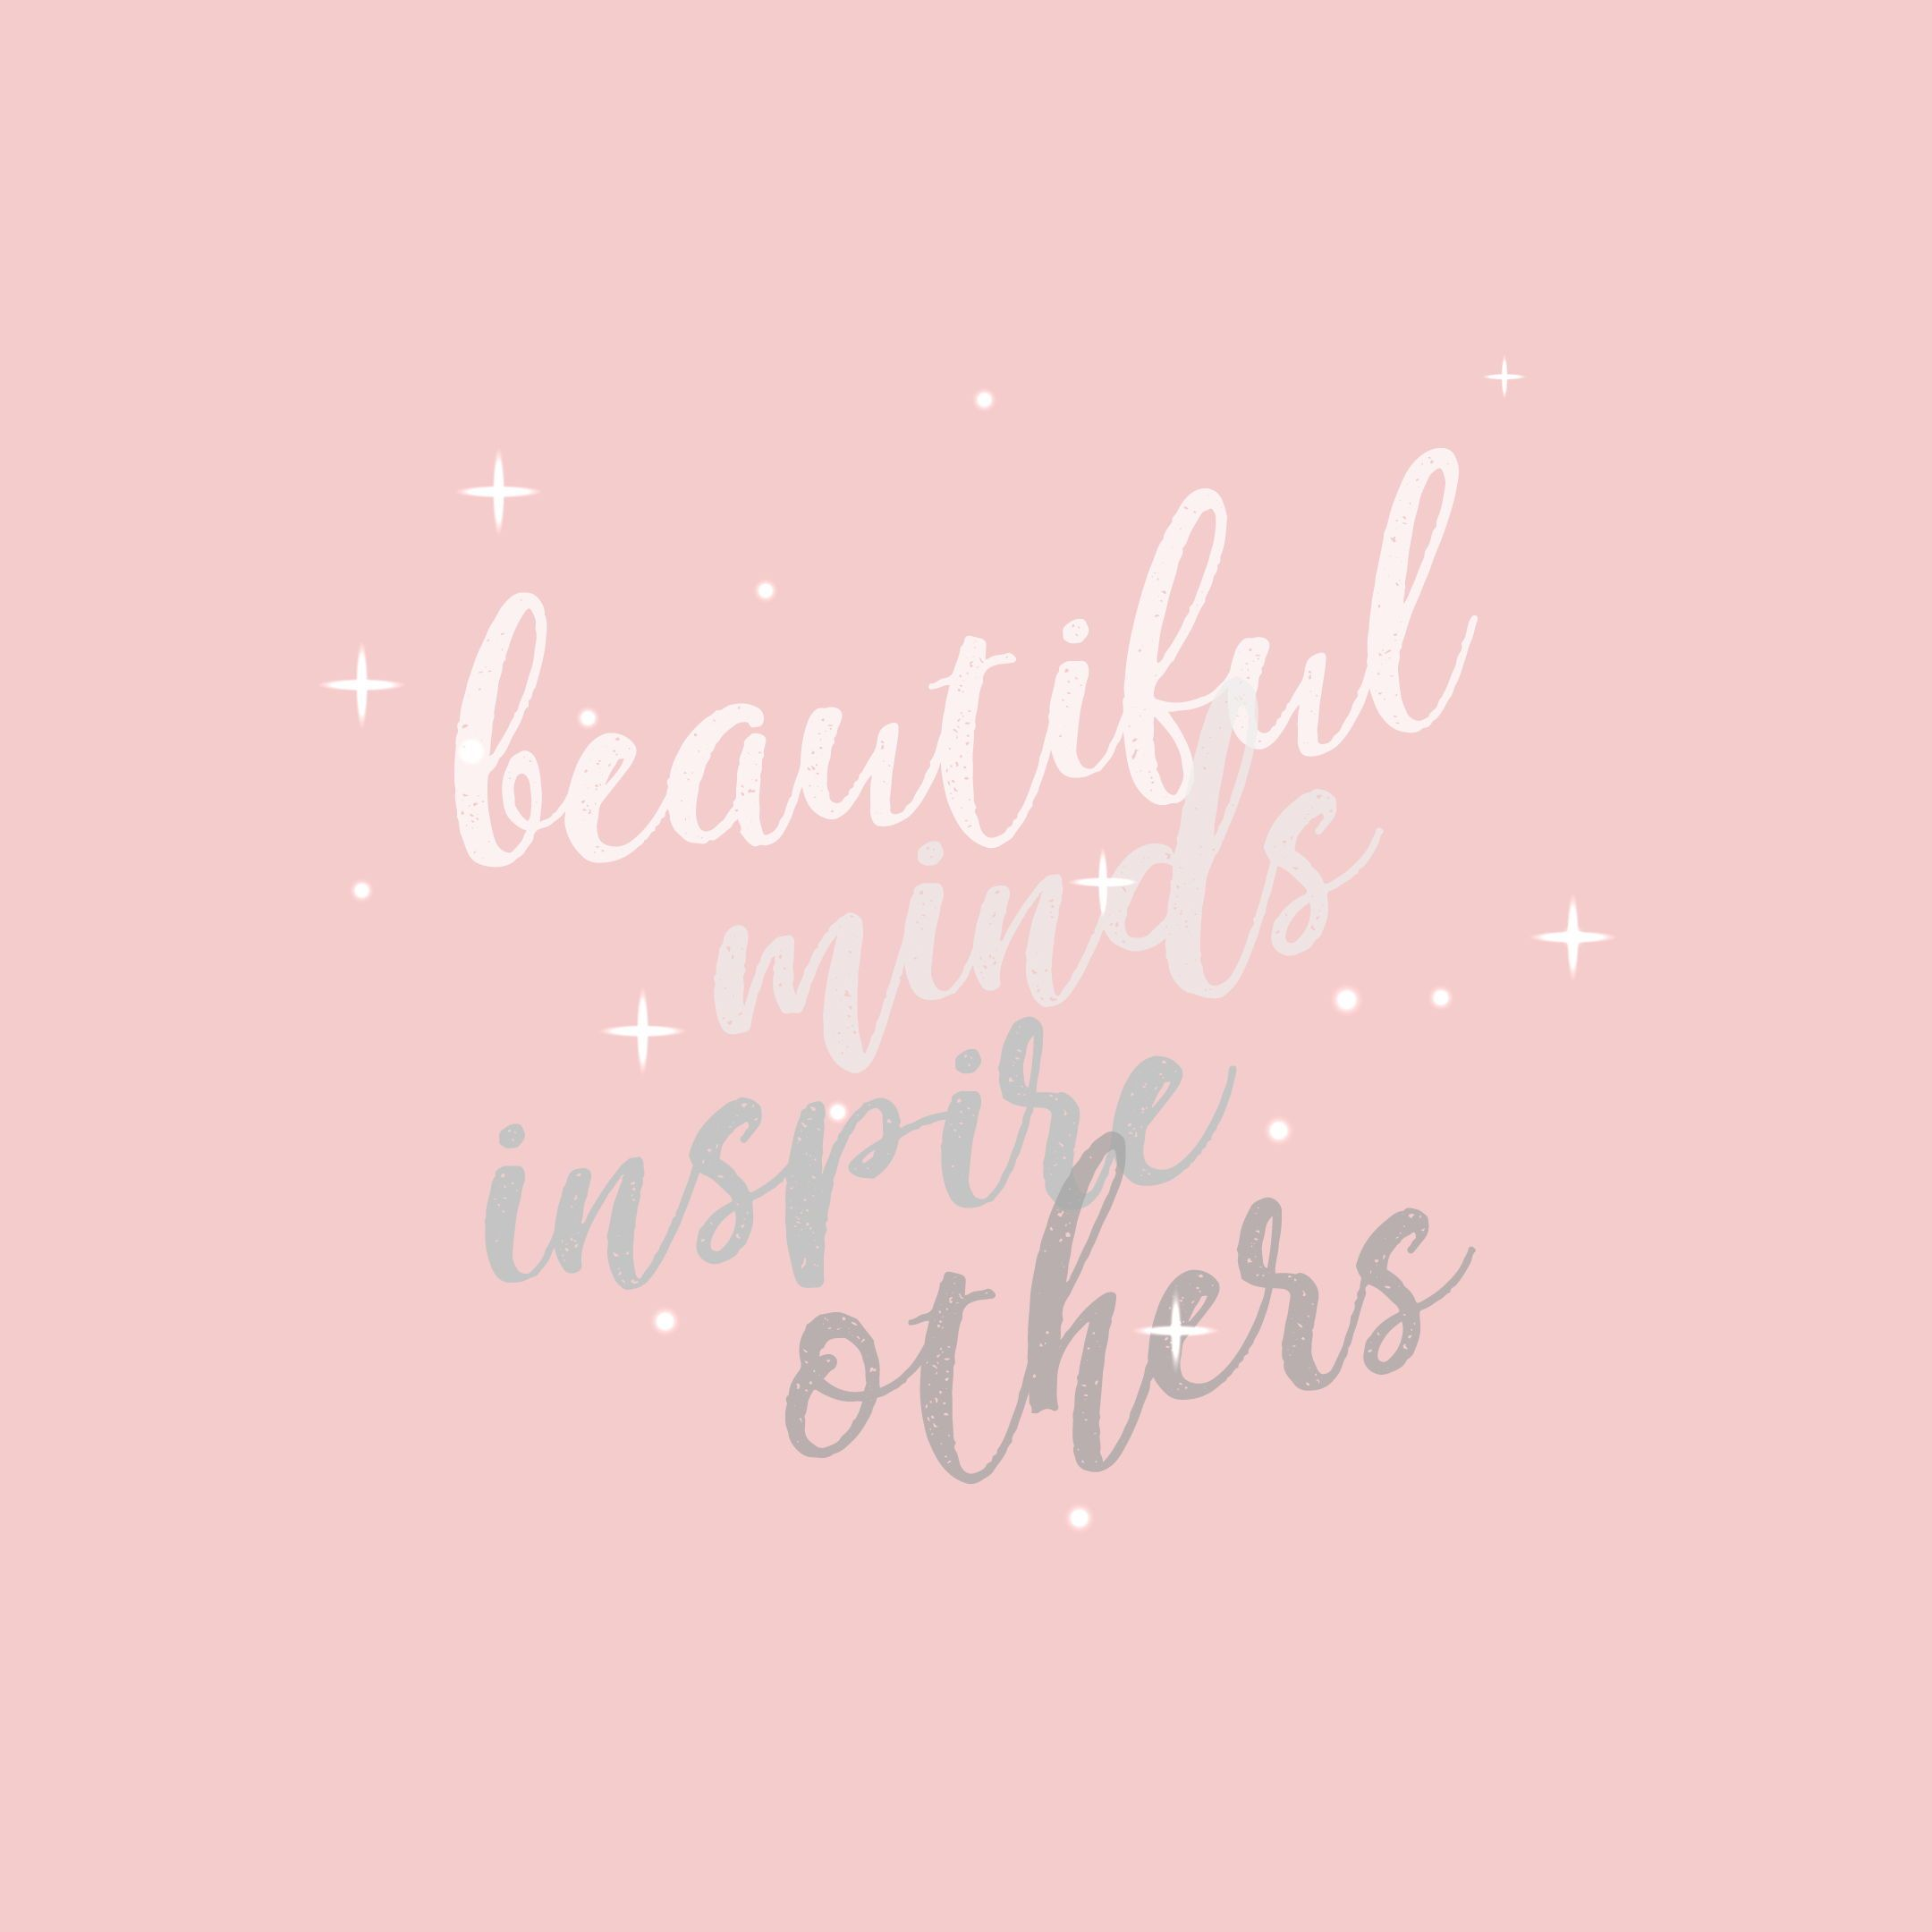 beautiful inspiring quotes  Color quotes, Blushing quotes, Beauty